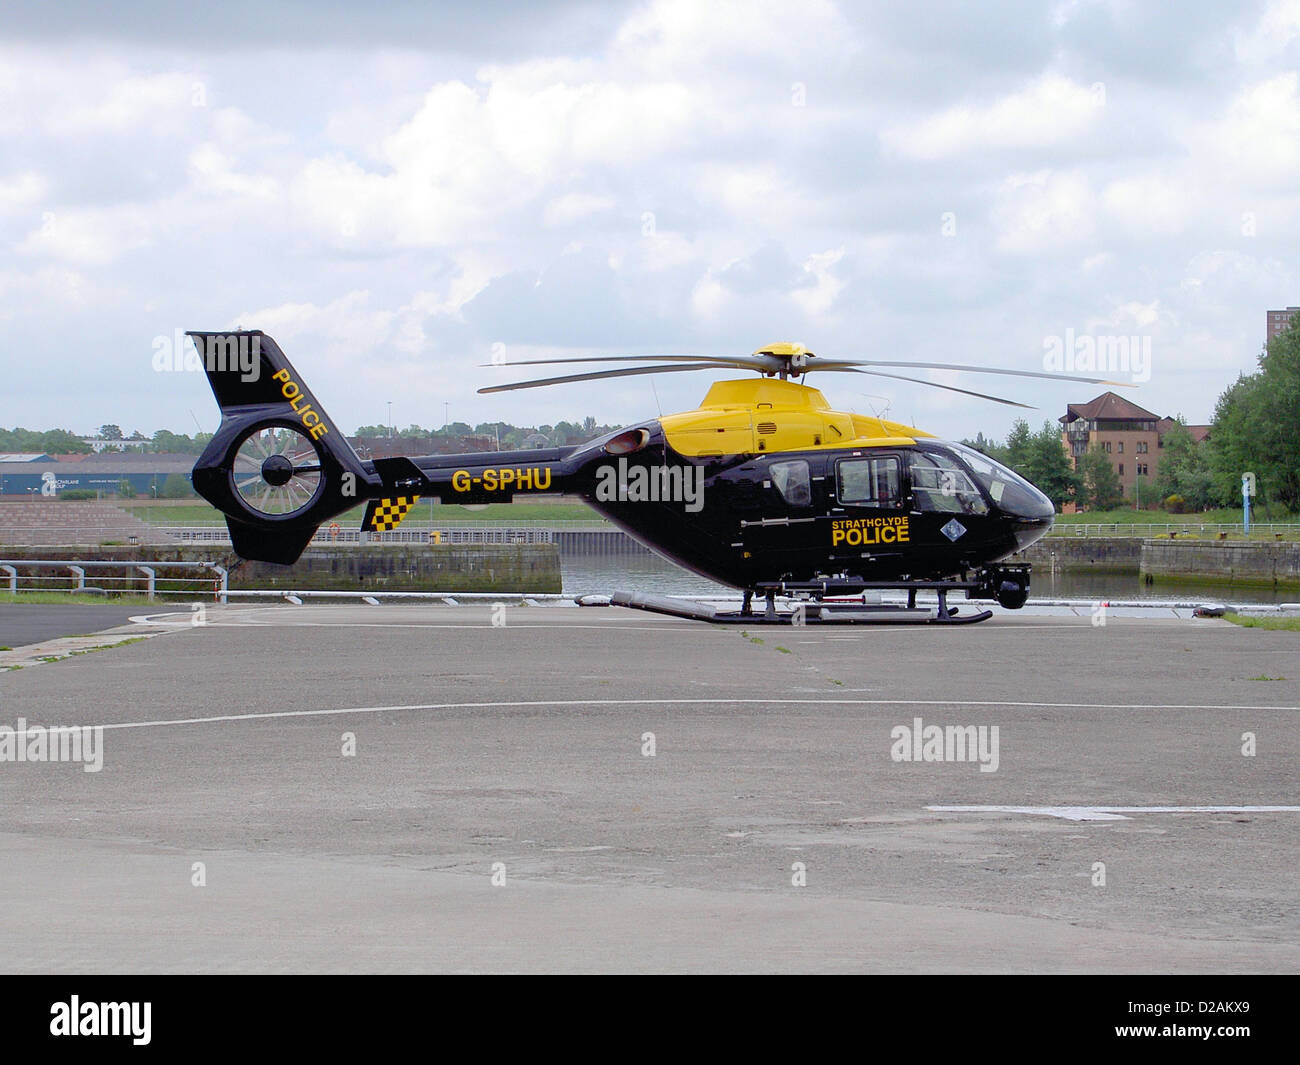 G-SPHU - UK - Police Services. ... G-SPHU - Bond Air Services Eurocopter EC135 - Stock Image